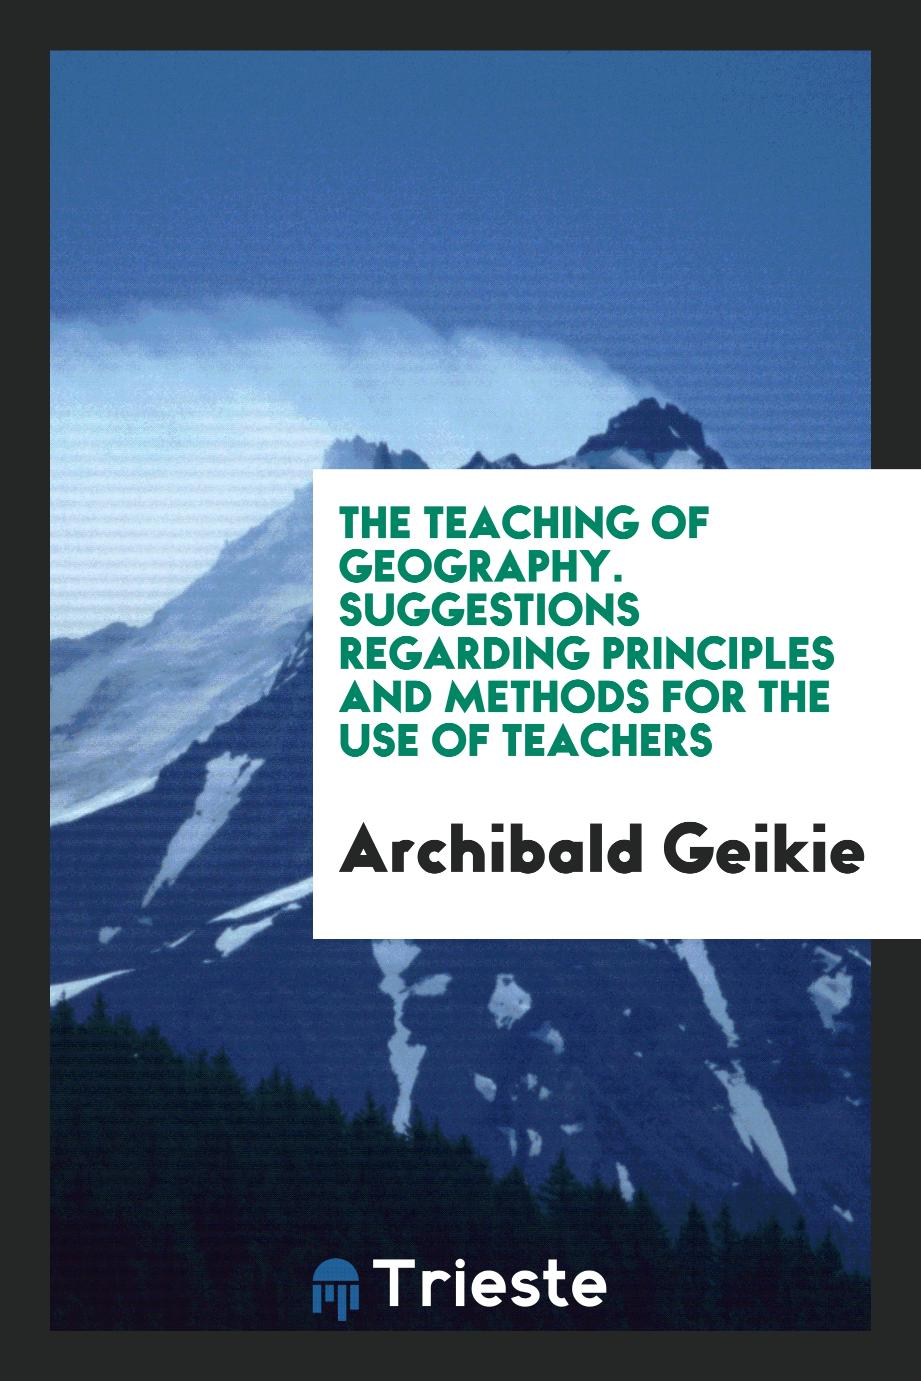 The Teaching of Geography. Suggestions Regarding Principles and Methods for the Use of Teachers